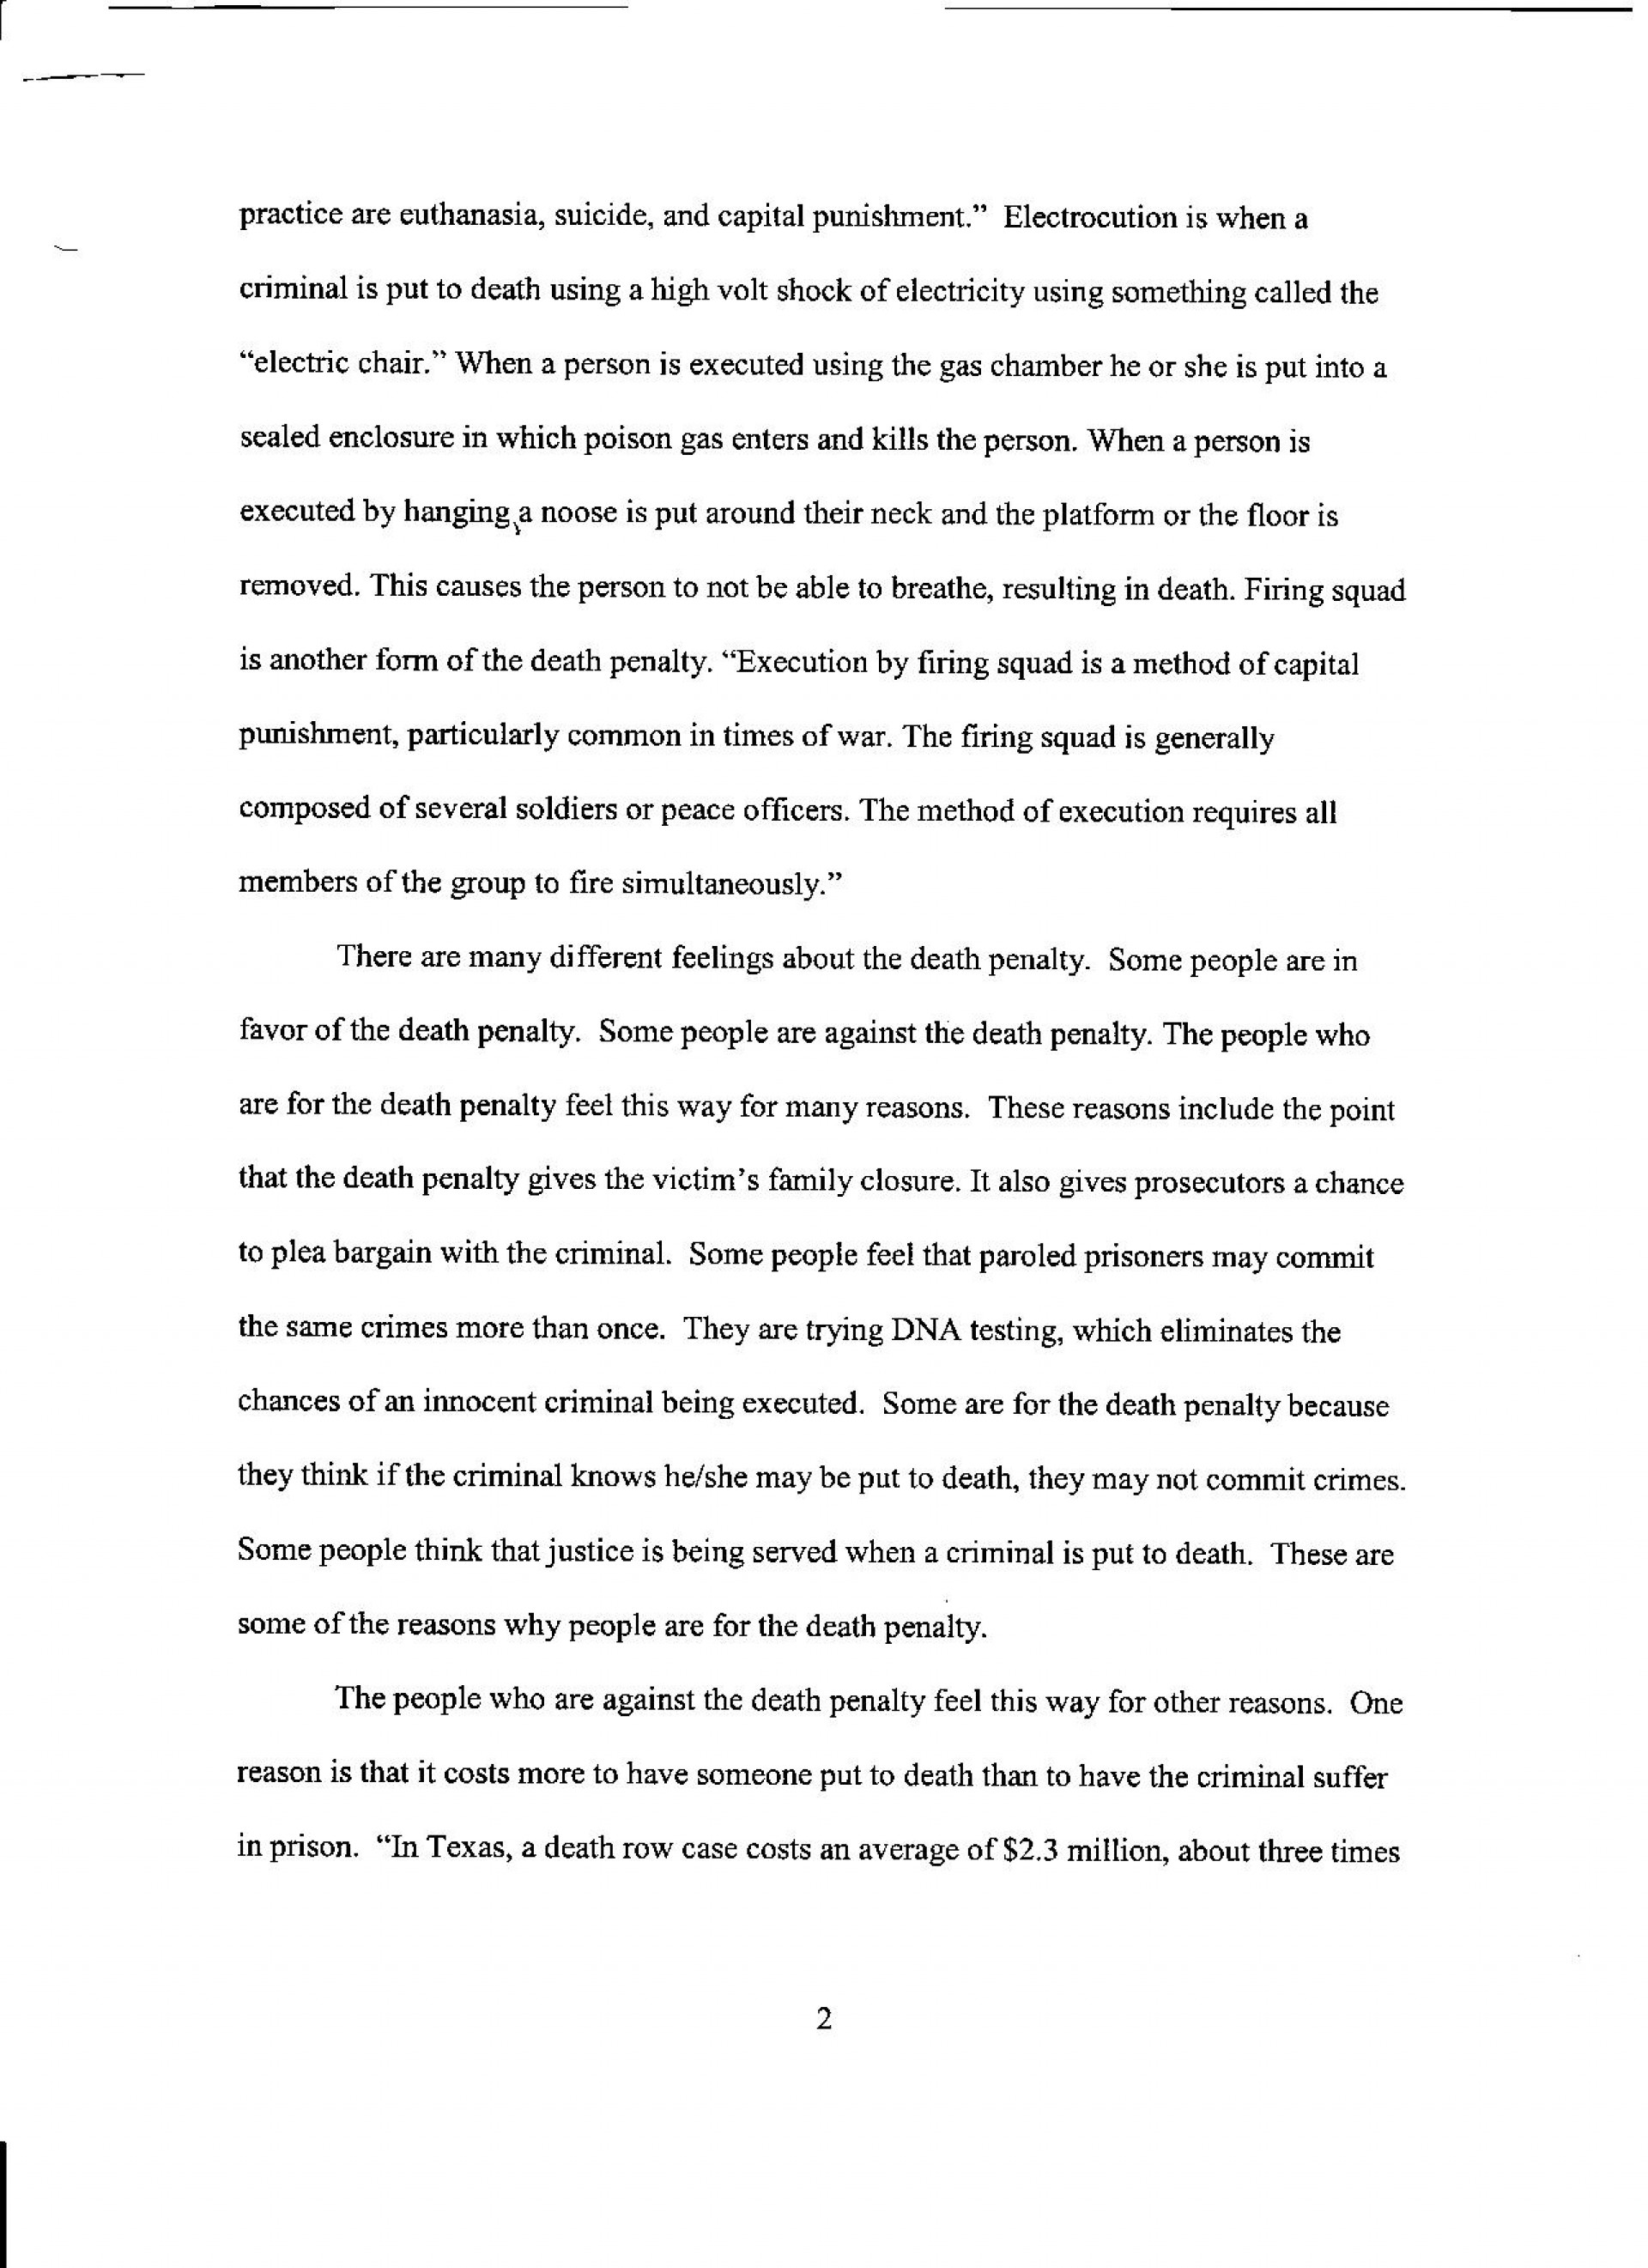 008 Argumentative Essay On Death Penalty Pg Unbelievable Ideas Persuasive About In The Philippines Pro 1920